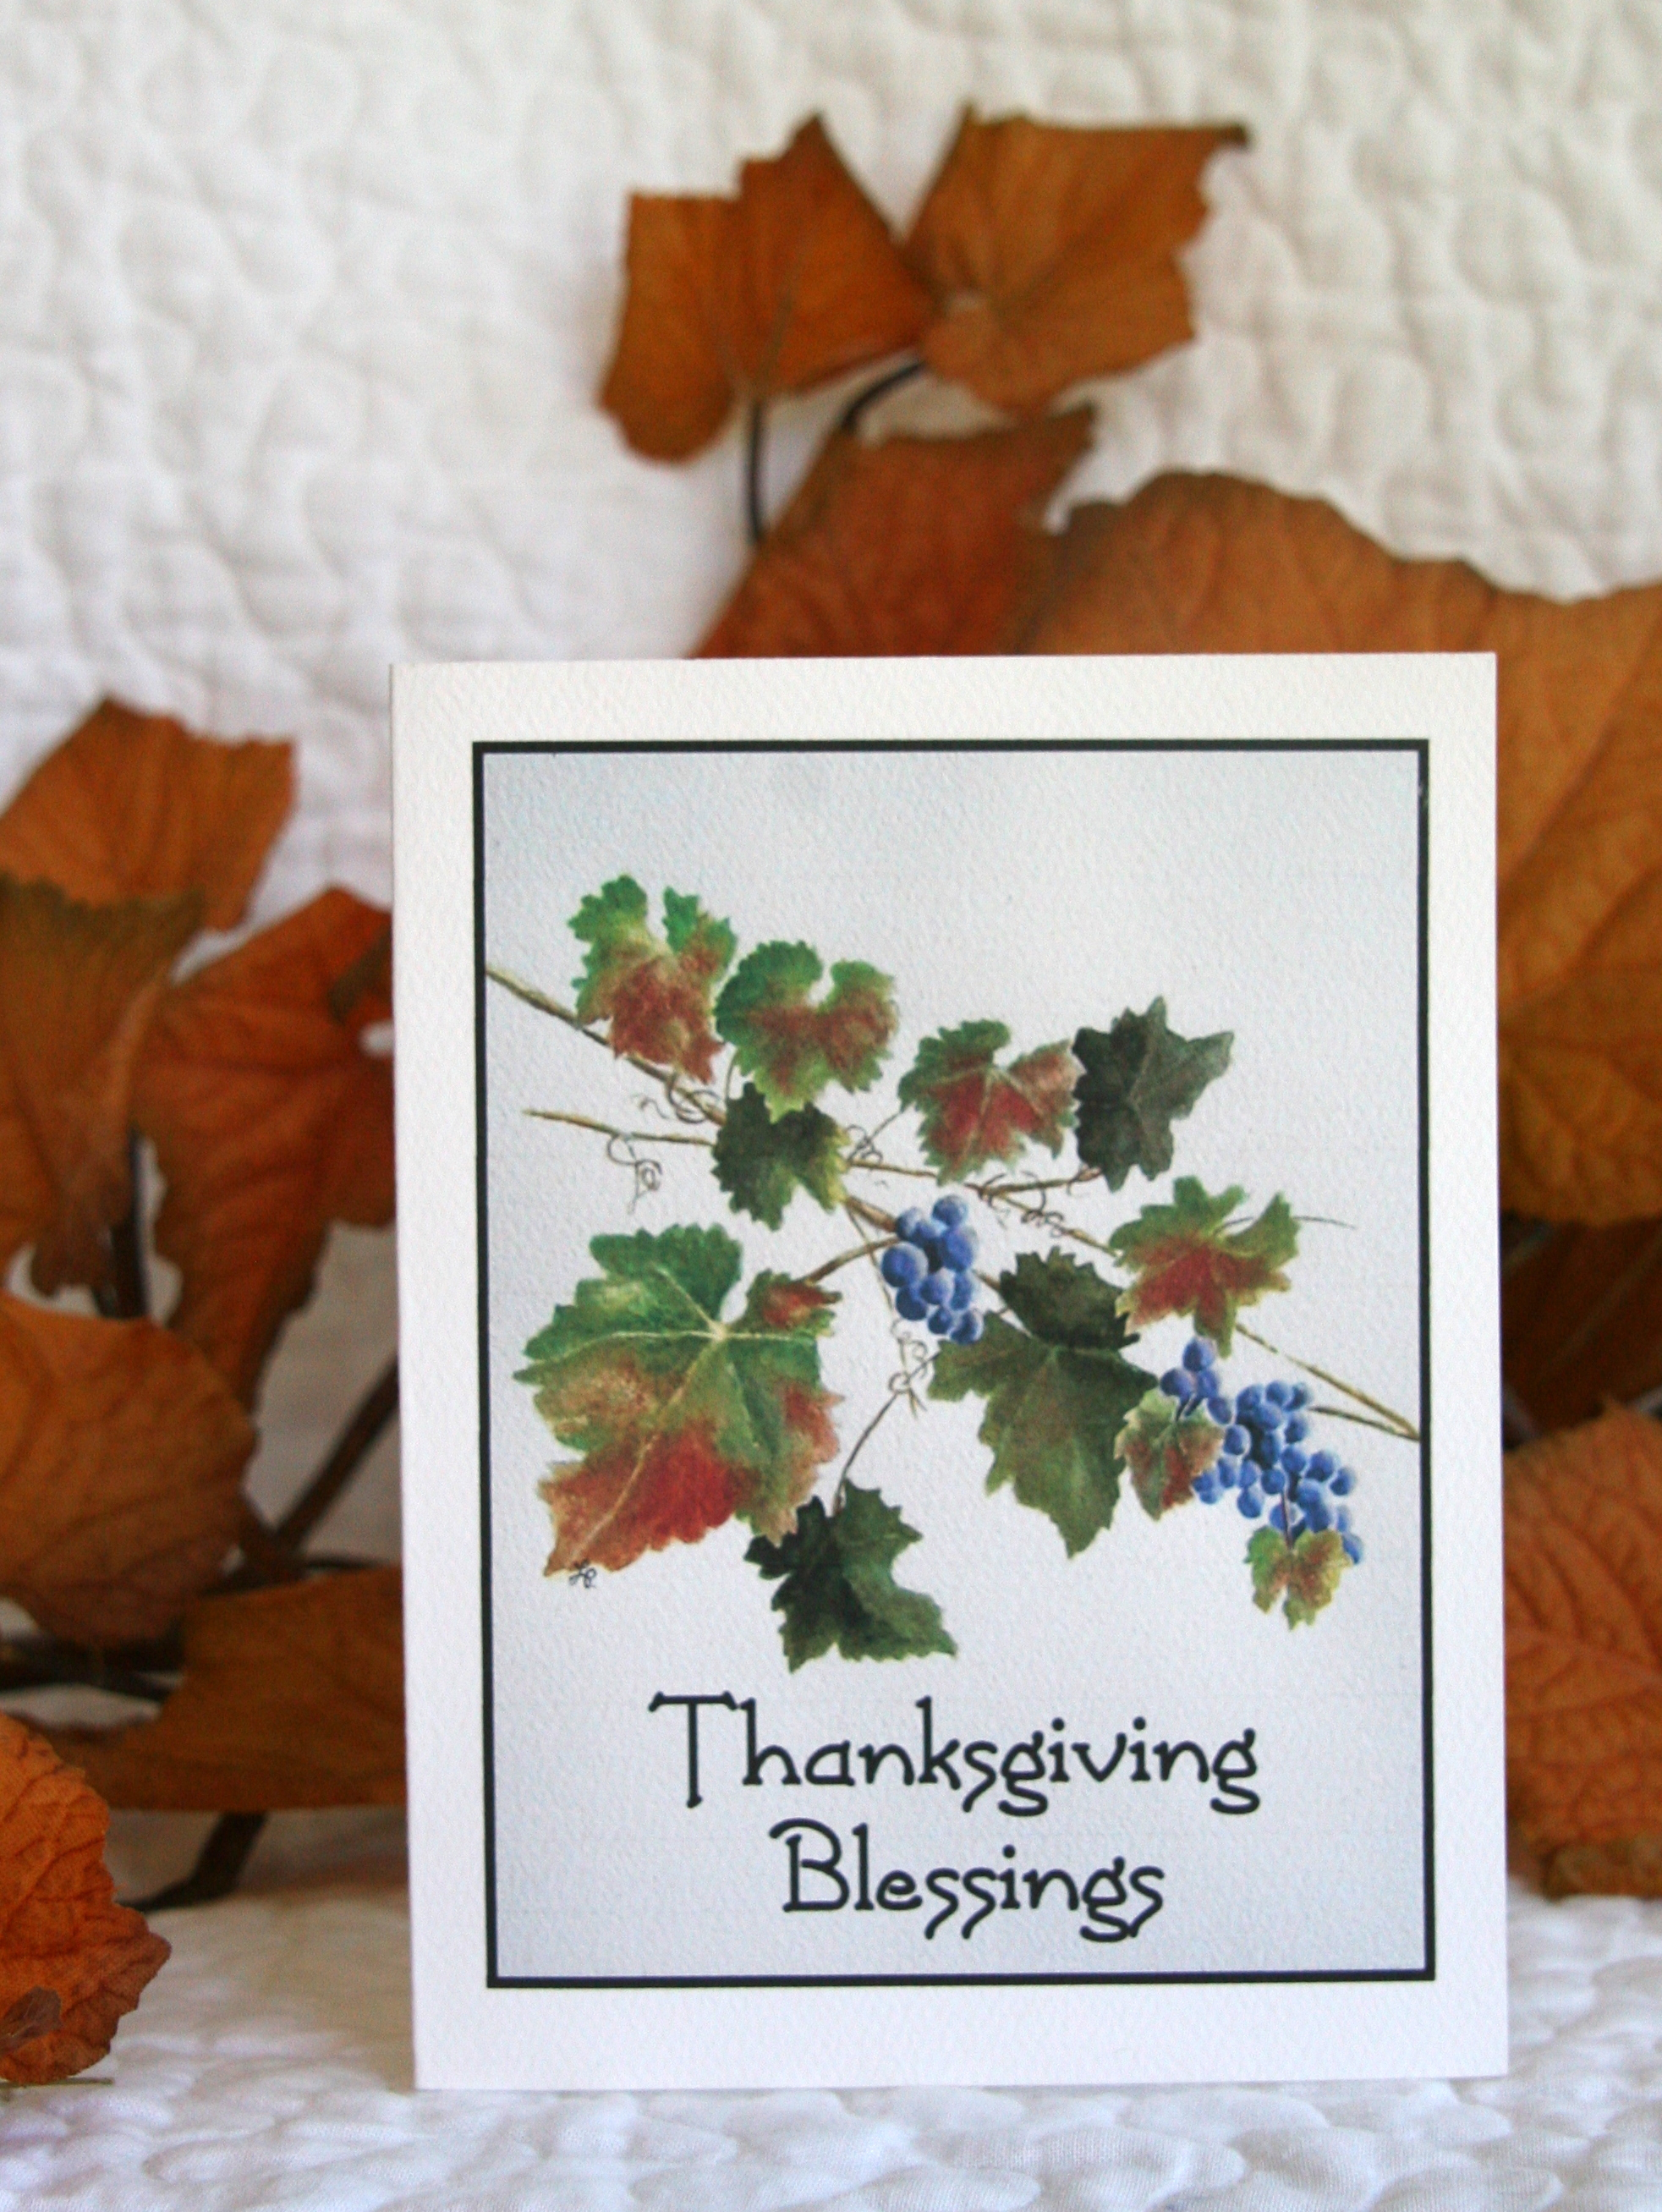 Thanksgiving Greeting Cards - 4 Card Set  Click  HERE  for details